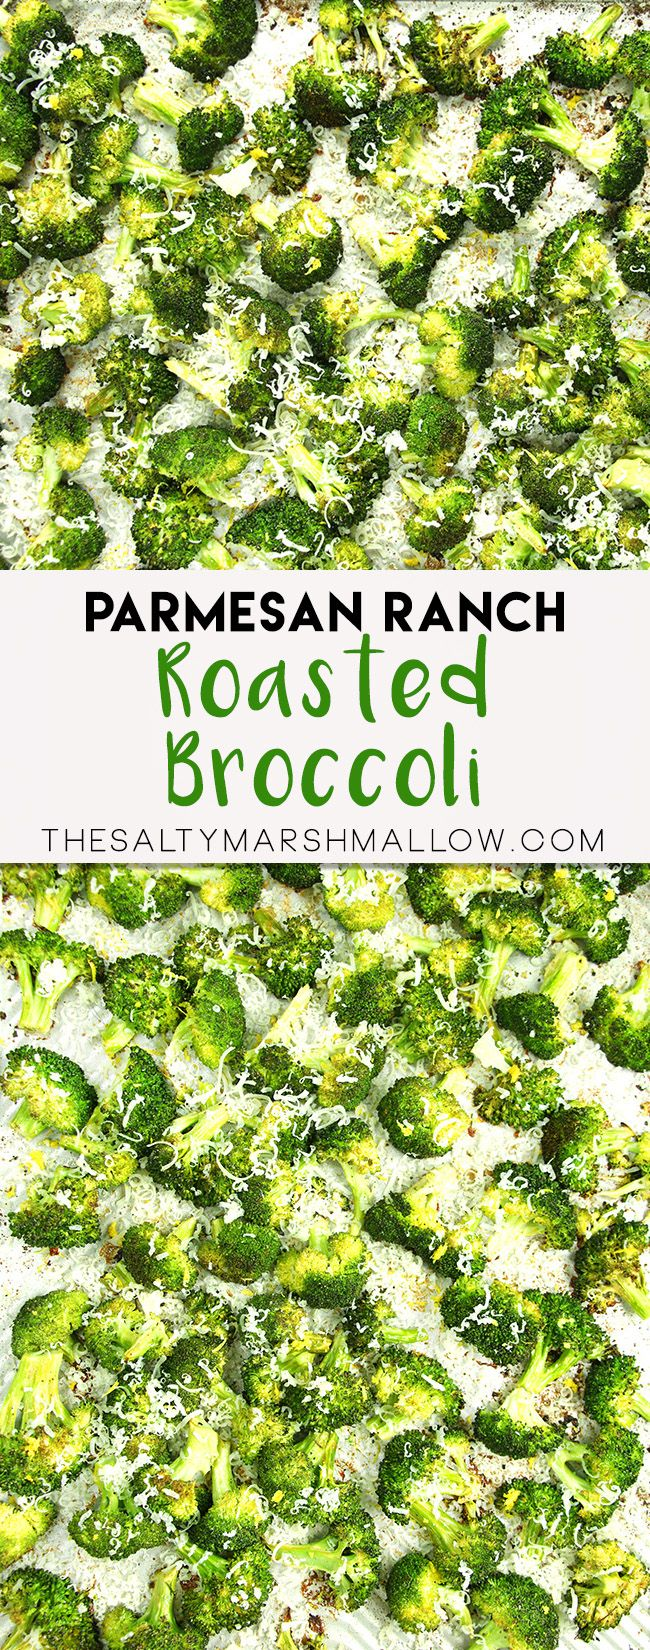 Parmesan ranch roasted broccoli is a super quick and easy to prepare side dish – whipped up on one sheet pan for easy clean up!  Broccoli roasted with ranch dressing mix, and garlic, topped with parmesan cheese! Remember to follow The Salty Marshmallow on Pinterest for all things that make me hungry! Confession:  I can...Read More »